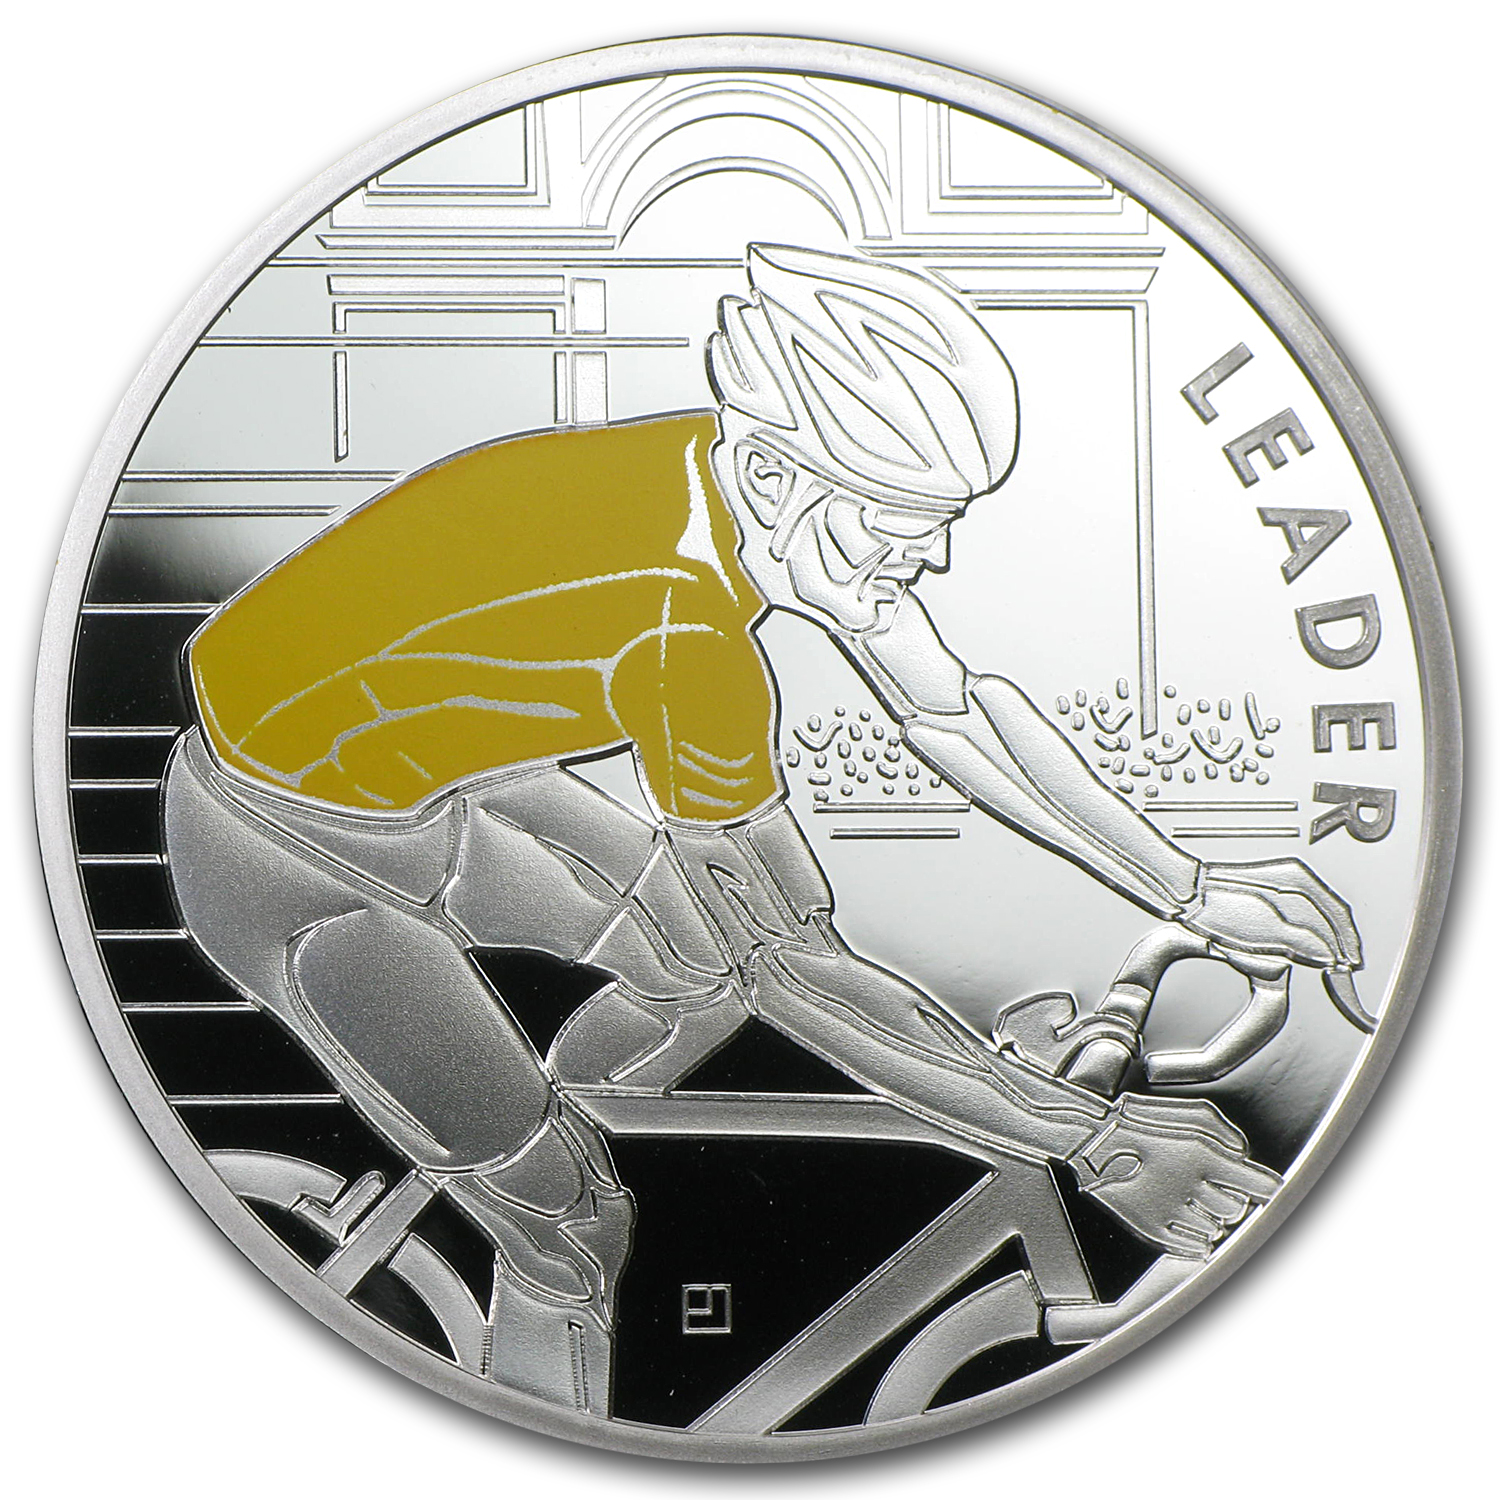 2013 10€ Silver Proof 100th Edition Tour de France -4 Coin Set